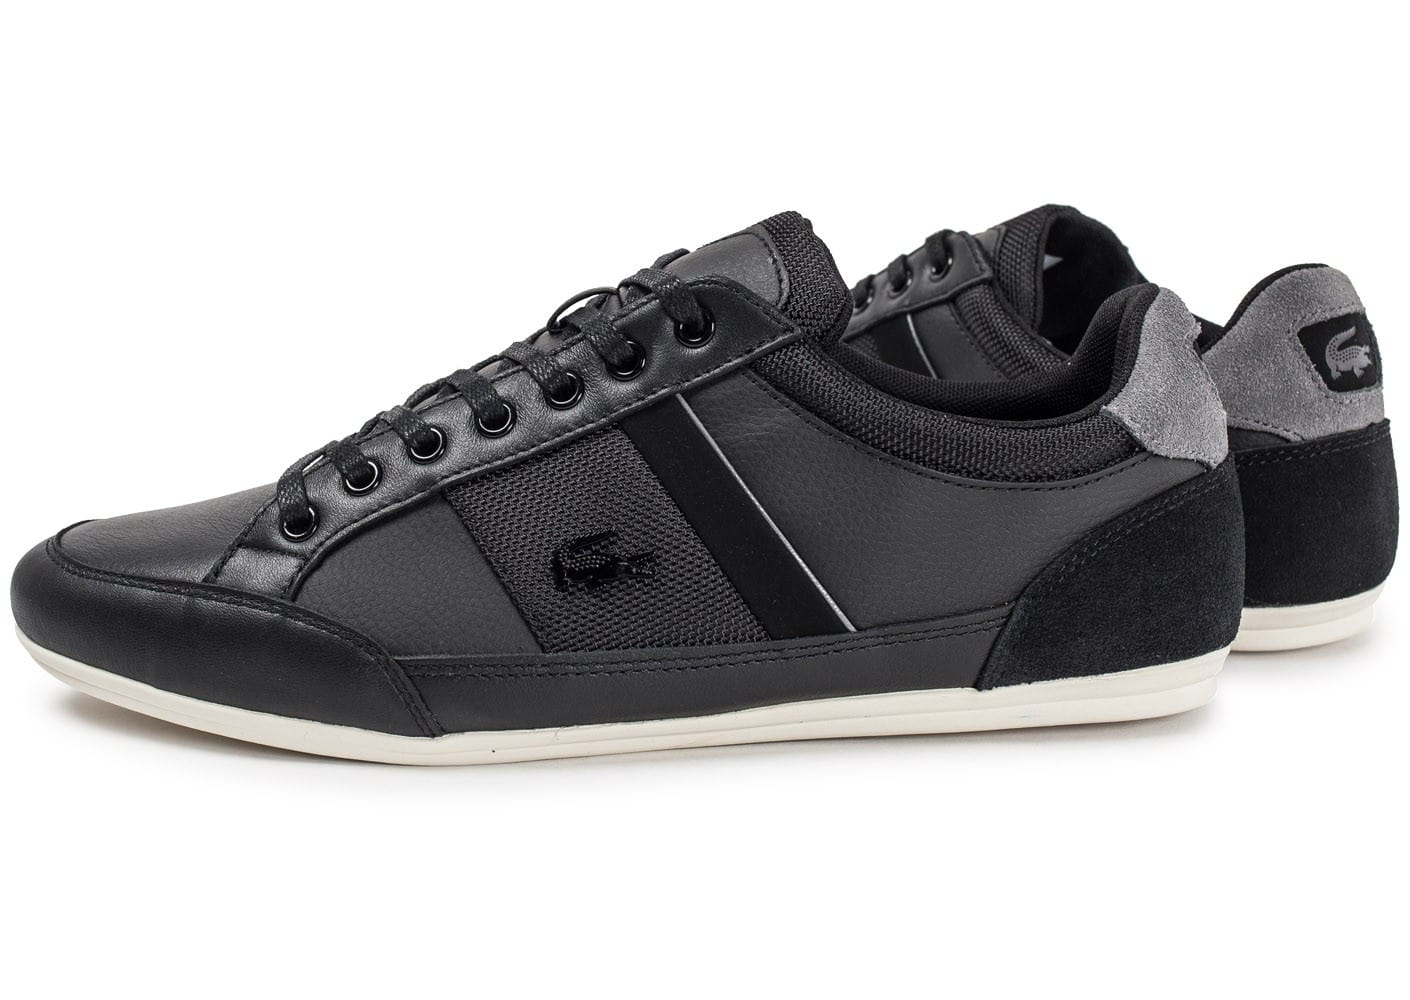 Lacoste Chaussures CHAYMON 1 Lacoste soldes Y6MjNc